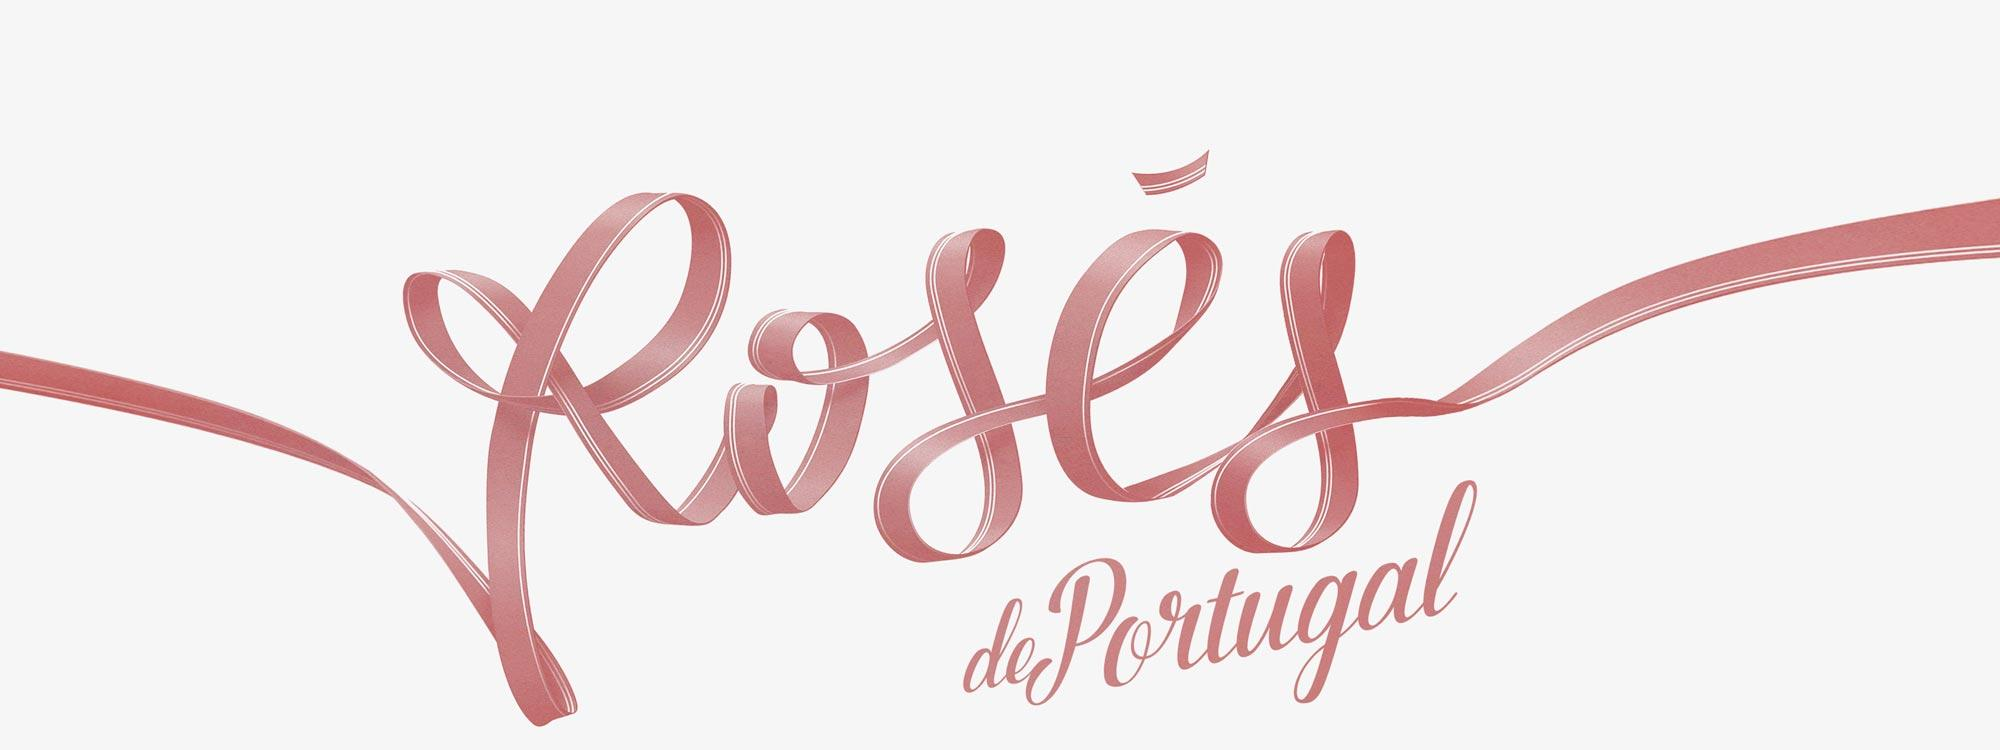 Roses of Portugal